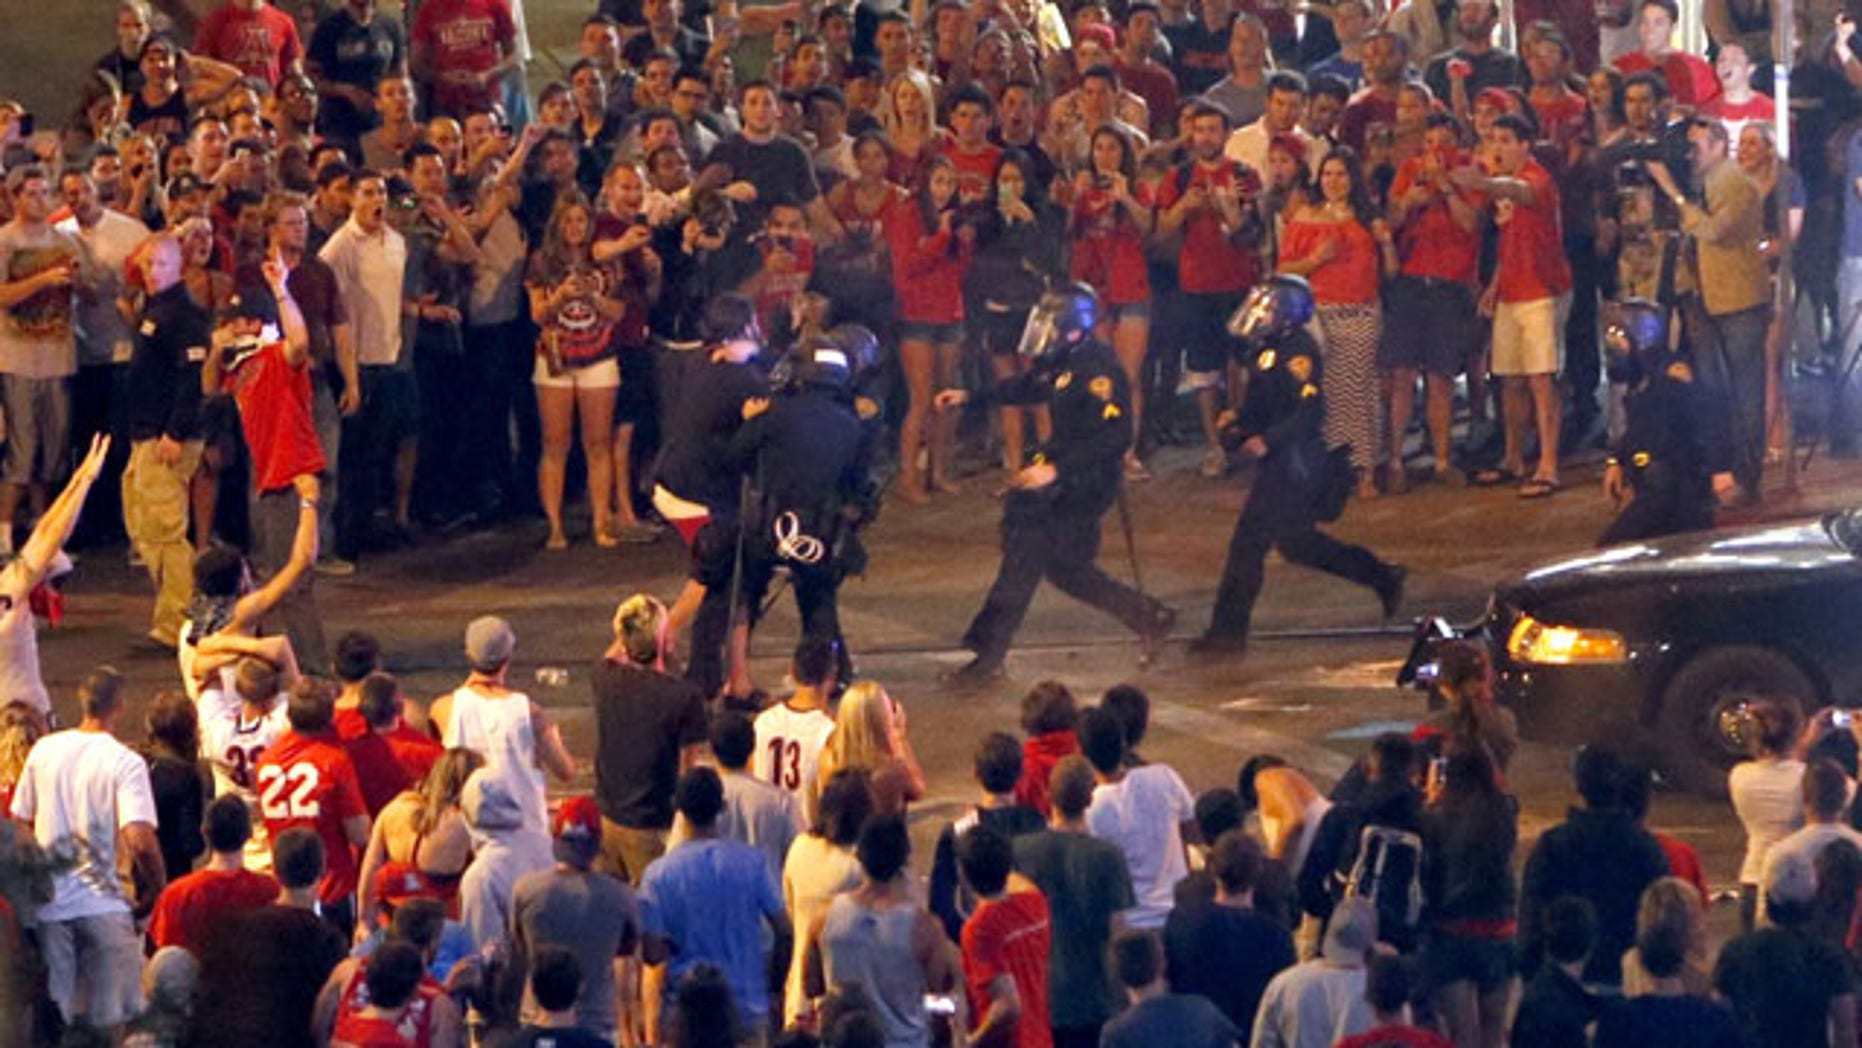 March 29, 2014: Tucson Police Officers rush out of their line to take a man into custody who had been taunting them and riling up a crowd of fans in Maingate Square in Tucson, Ariz. following Arizona's loss to Wisconsin 64-63 in the West Region NCAA final. (AP Photo/Arizona Daily Star, Kelly Presnell)